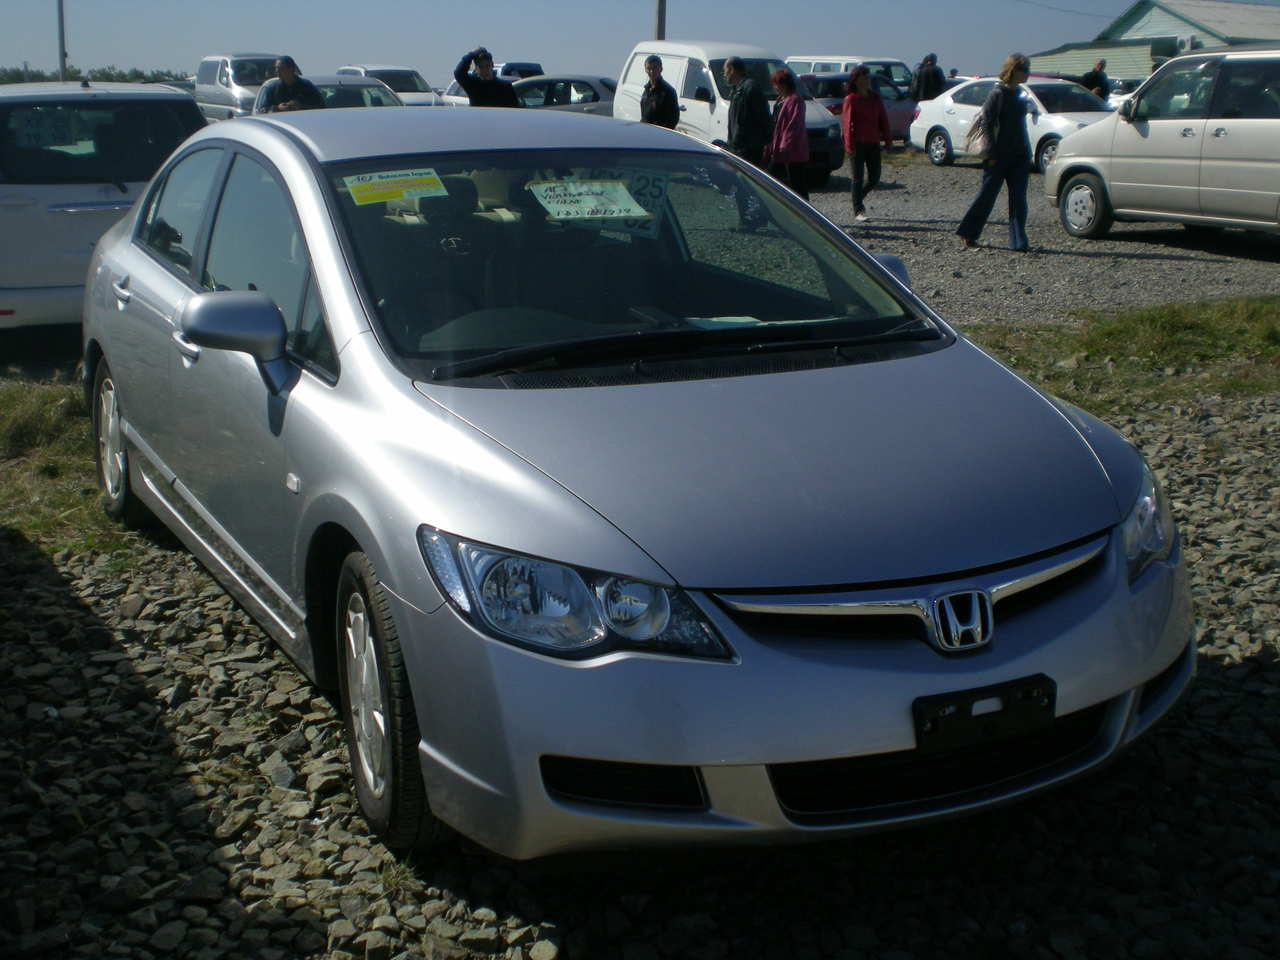 civic honda 2005 hybrid cars transmission automatic enlarge gearbox drive